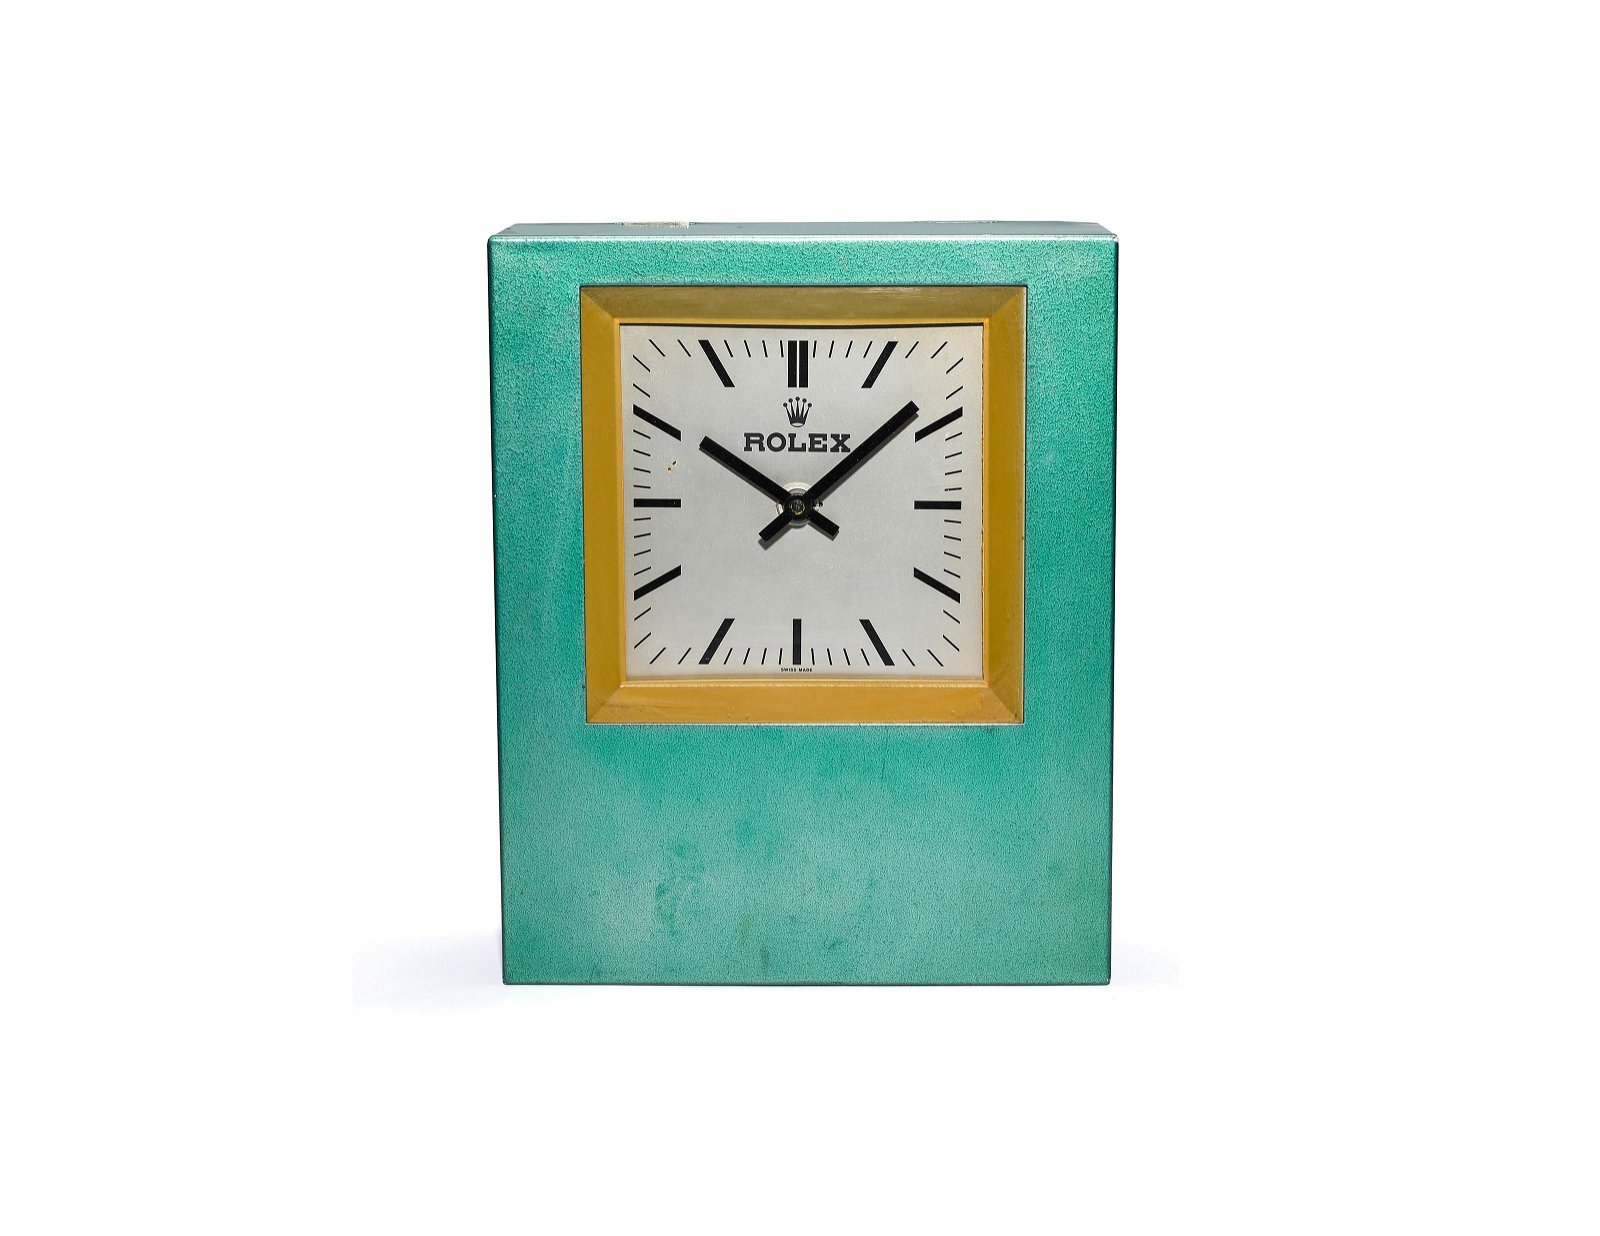 ROLEX, A LARGE AND ATTRACTIVE WALL CLOCK